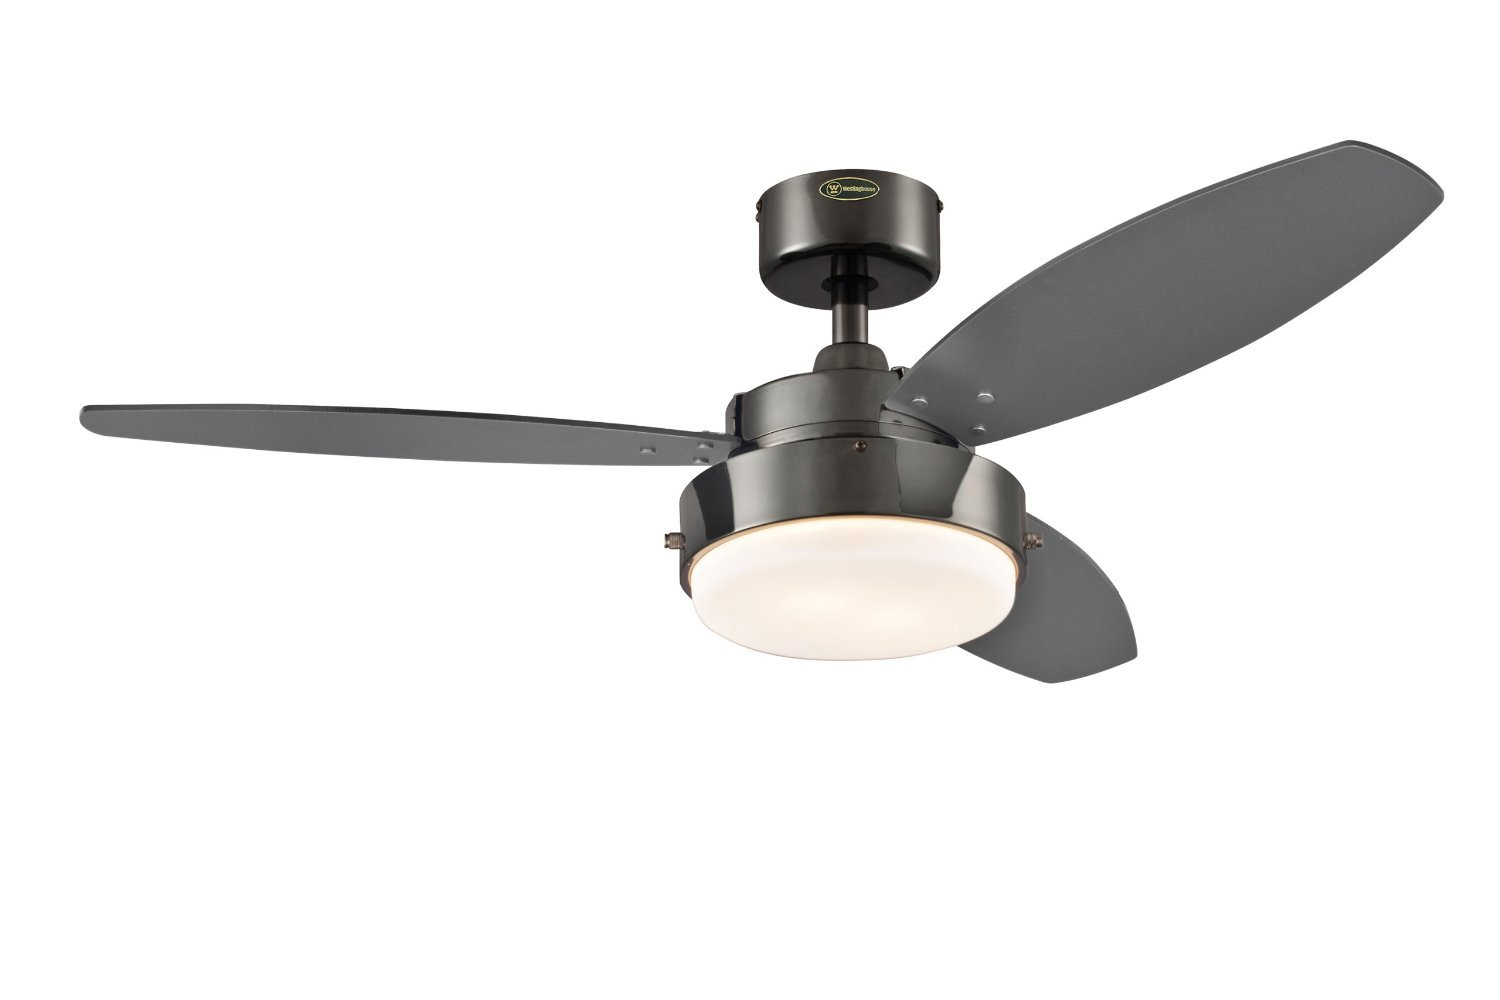 Westinghouse 7801665 comet two light 52 inch reversible five blade westinghouse lighting alloy 42 inch ceiling fan gun metal finish aloadofball Gallery